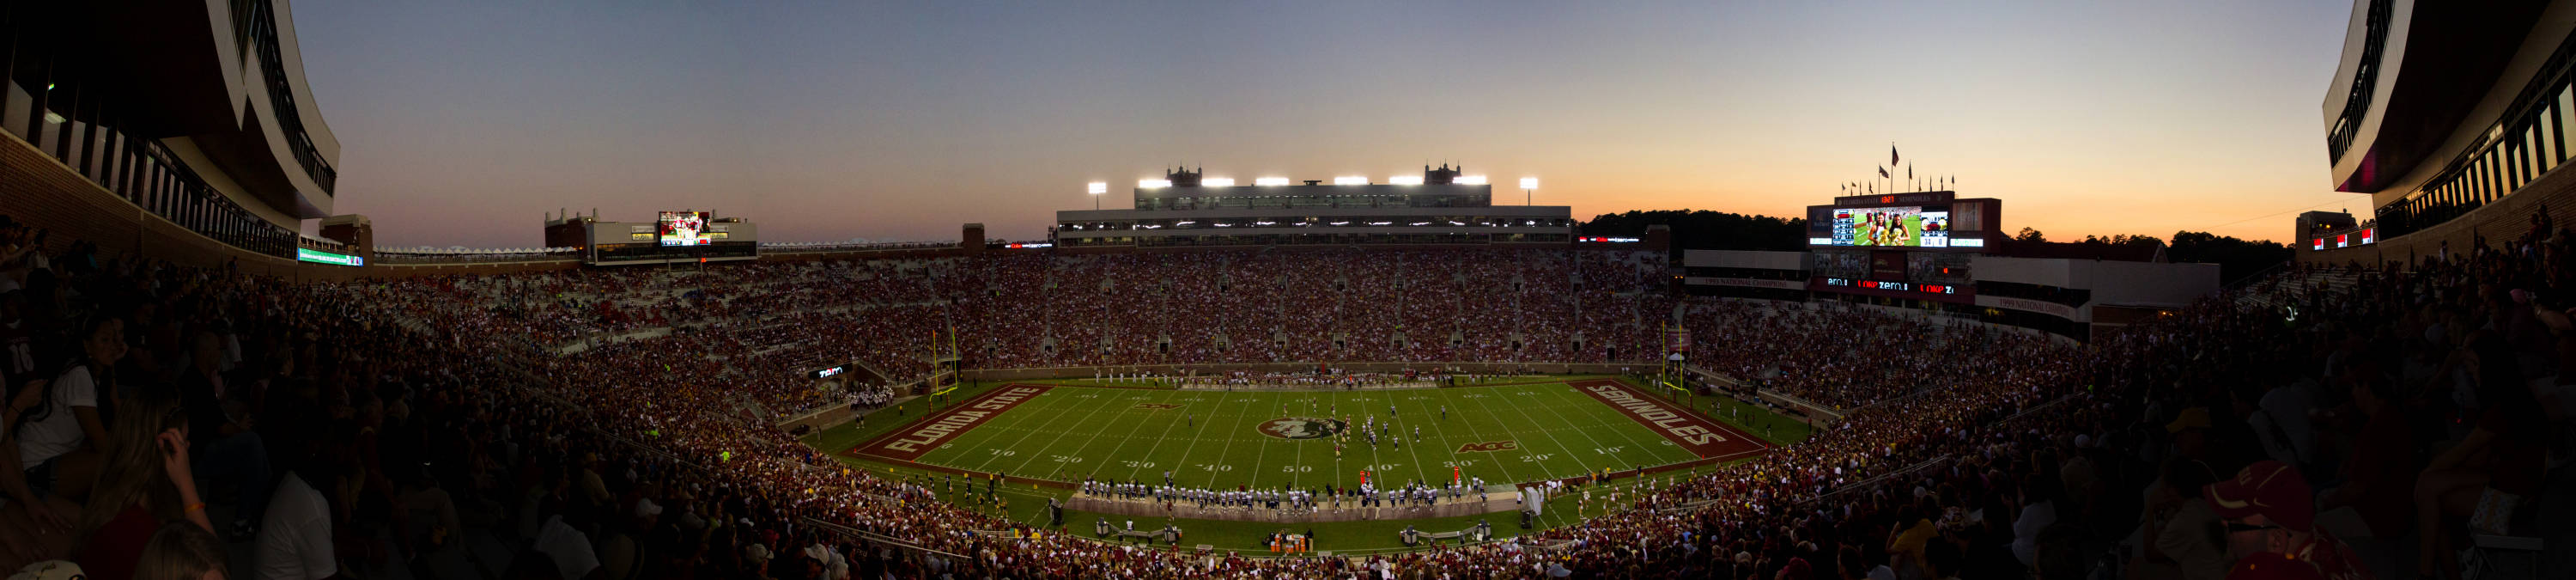 The sun sets over Doak Campbell Stadium during the third quarter of the game against CSU on September 10, 2011.